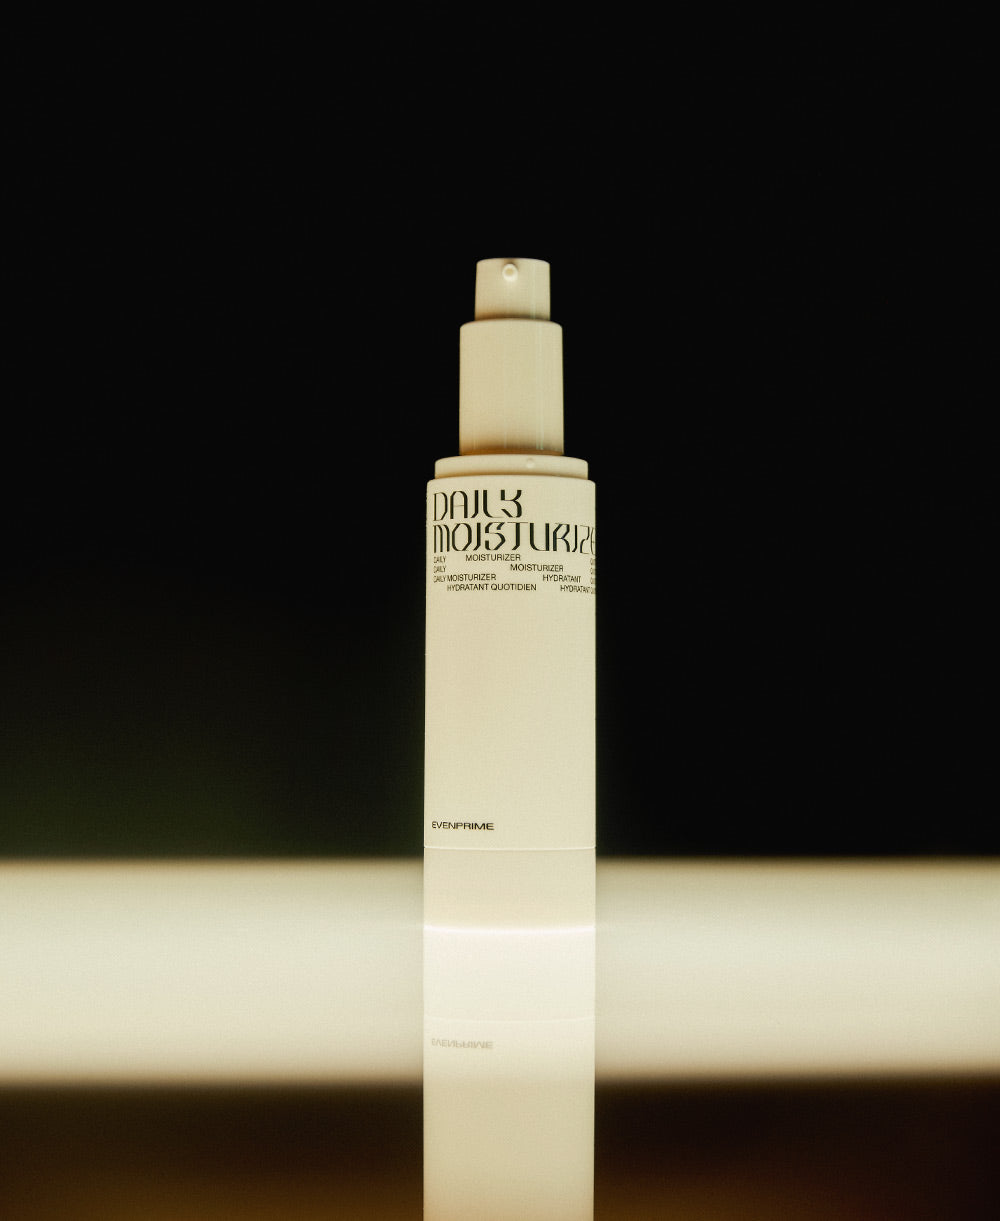 MEET OUR NEW DAILY MOISTURIZER